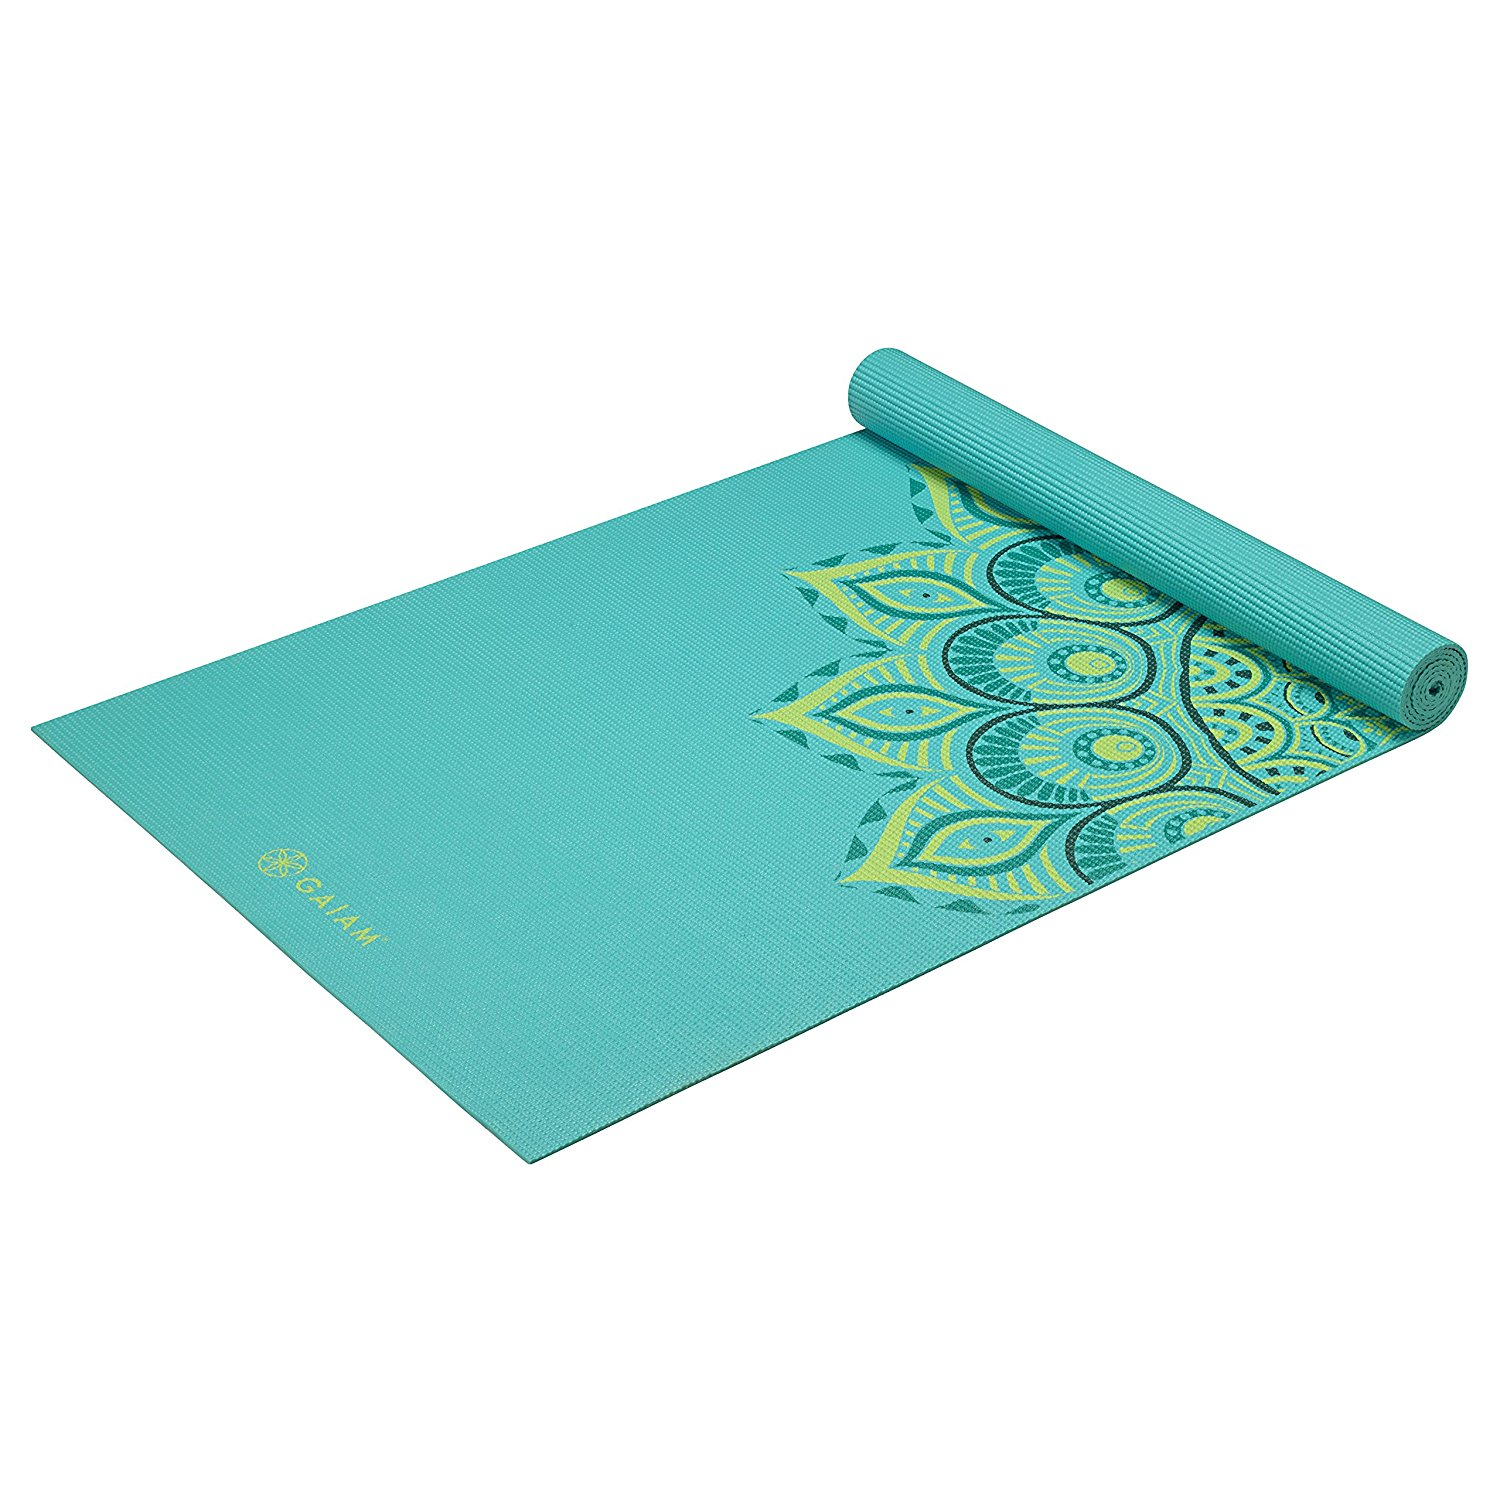 Teal yoga mat with floral detail.